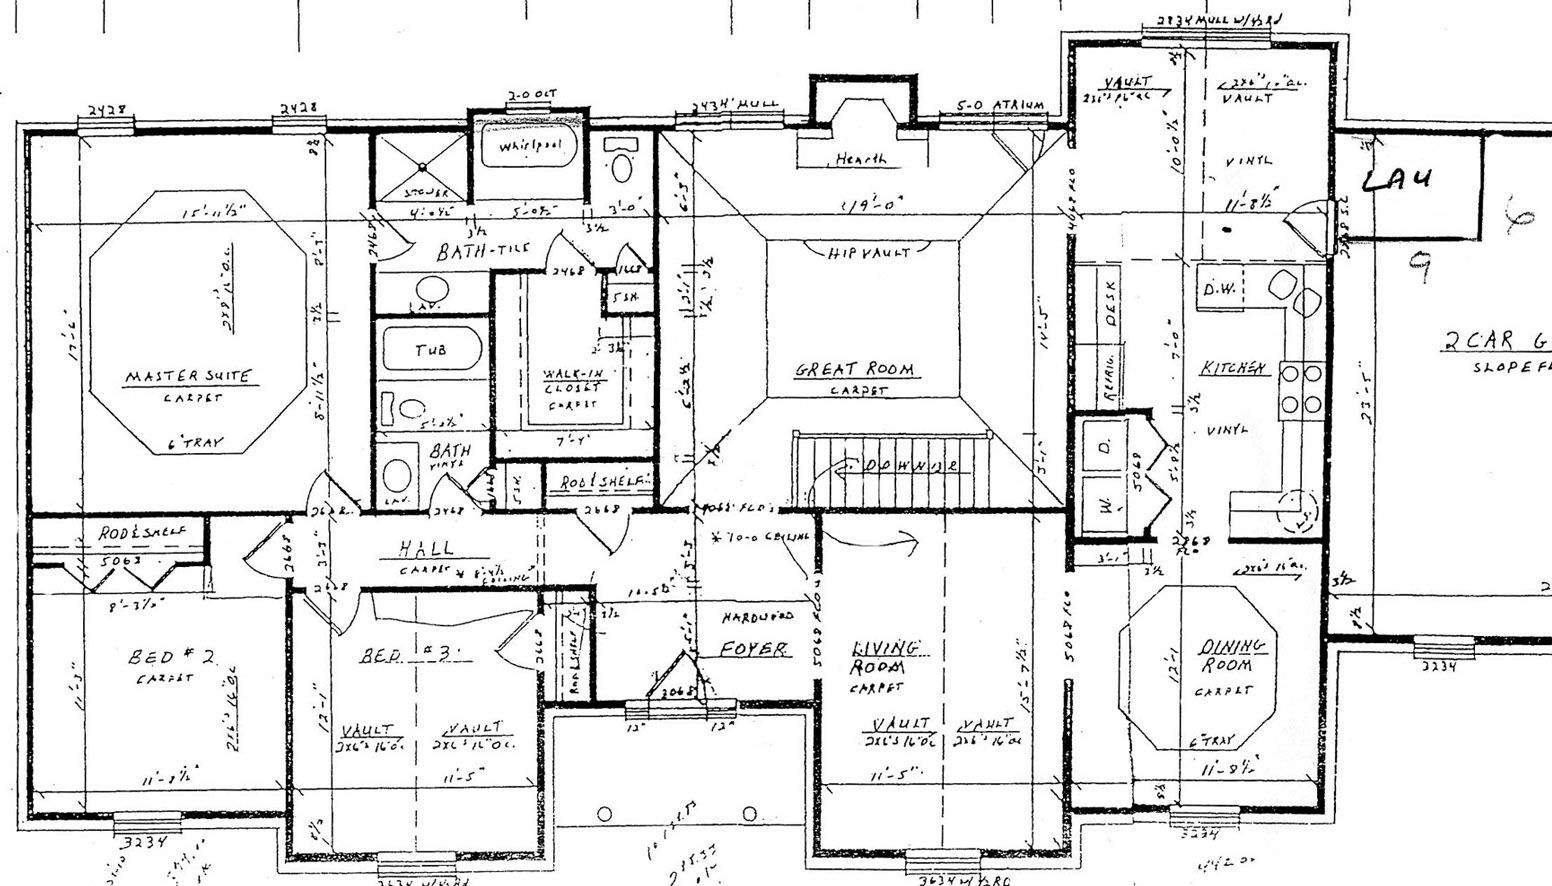 House blueprints with dimensions home plans picture woodland hut house blueprints with dimensions home plans picture woodland hut small minecraft blueprint planetarymap malvernweather Gallery